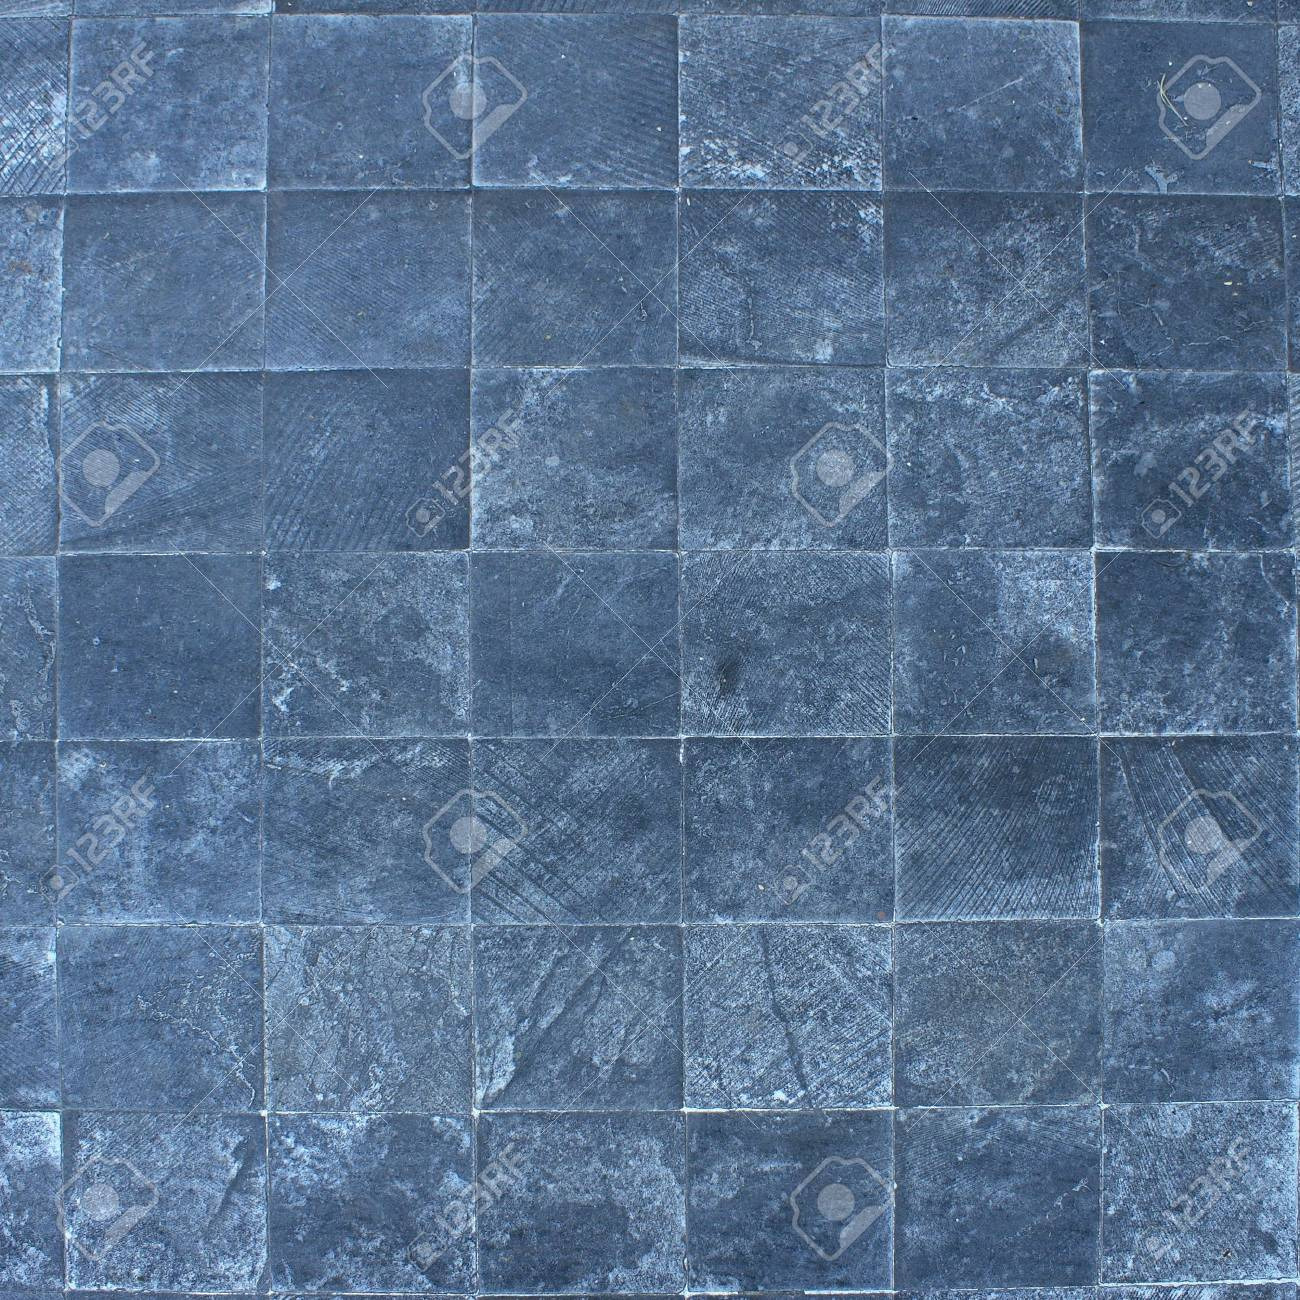 Floor Tiles Useful As A Background Stock Photo, Picture And Royalty ...